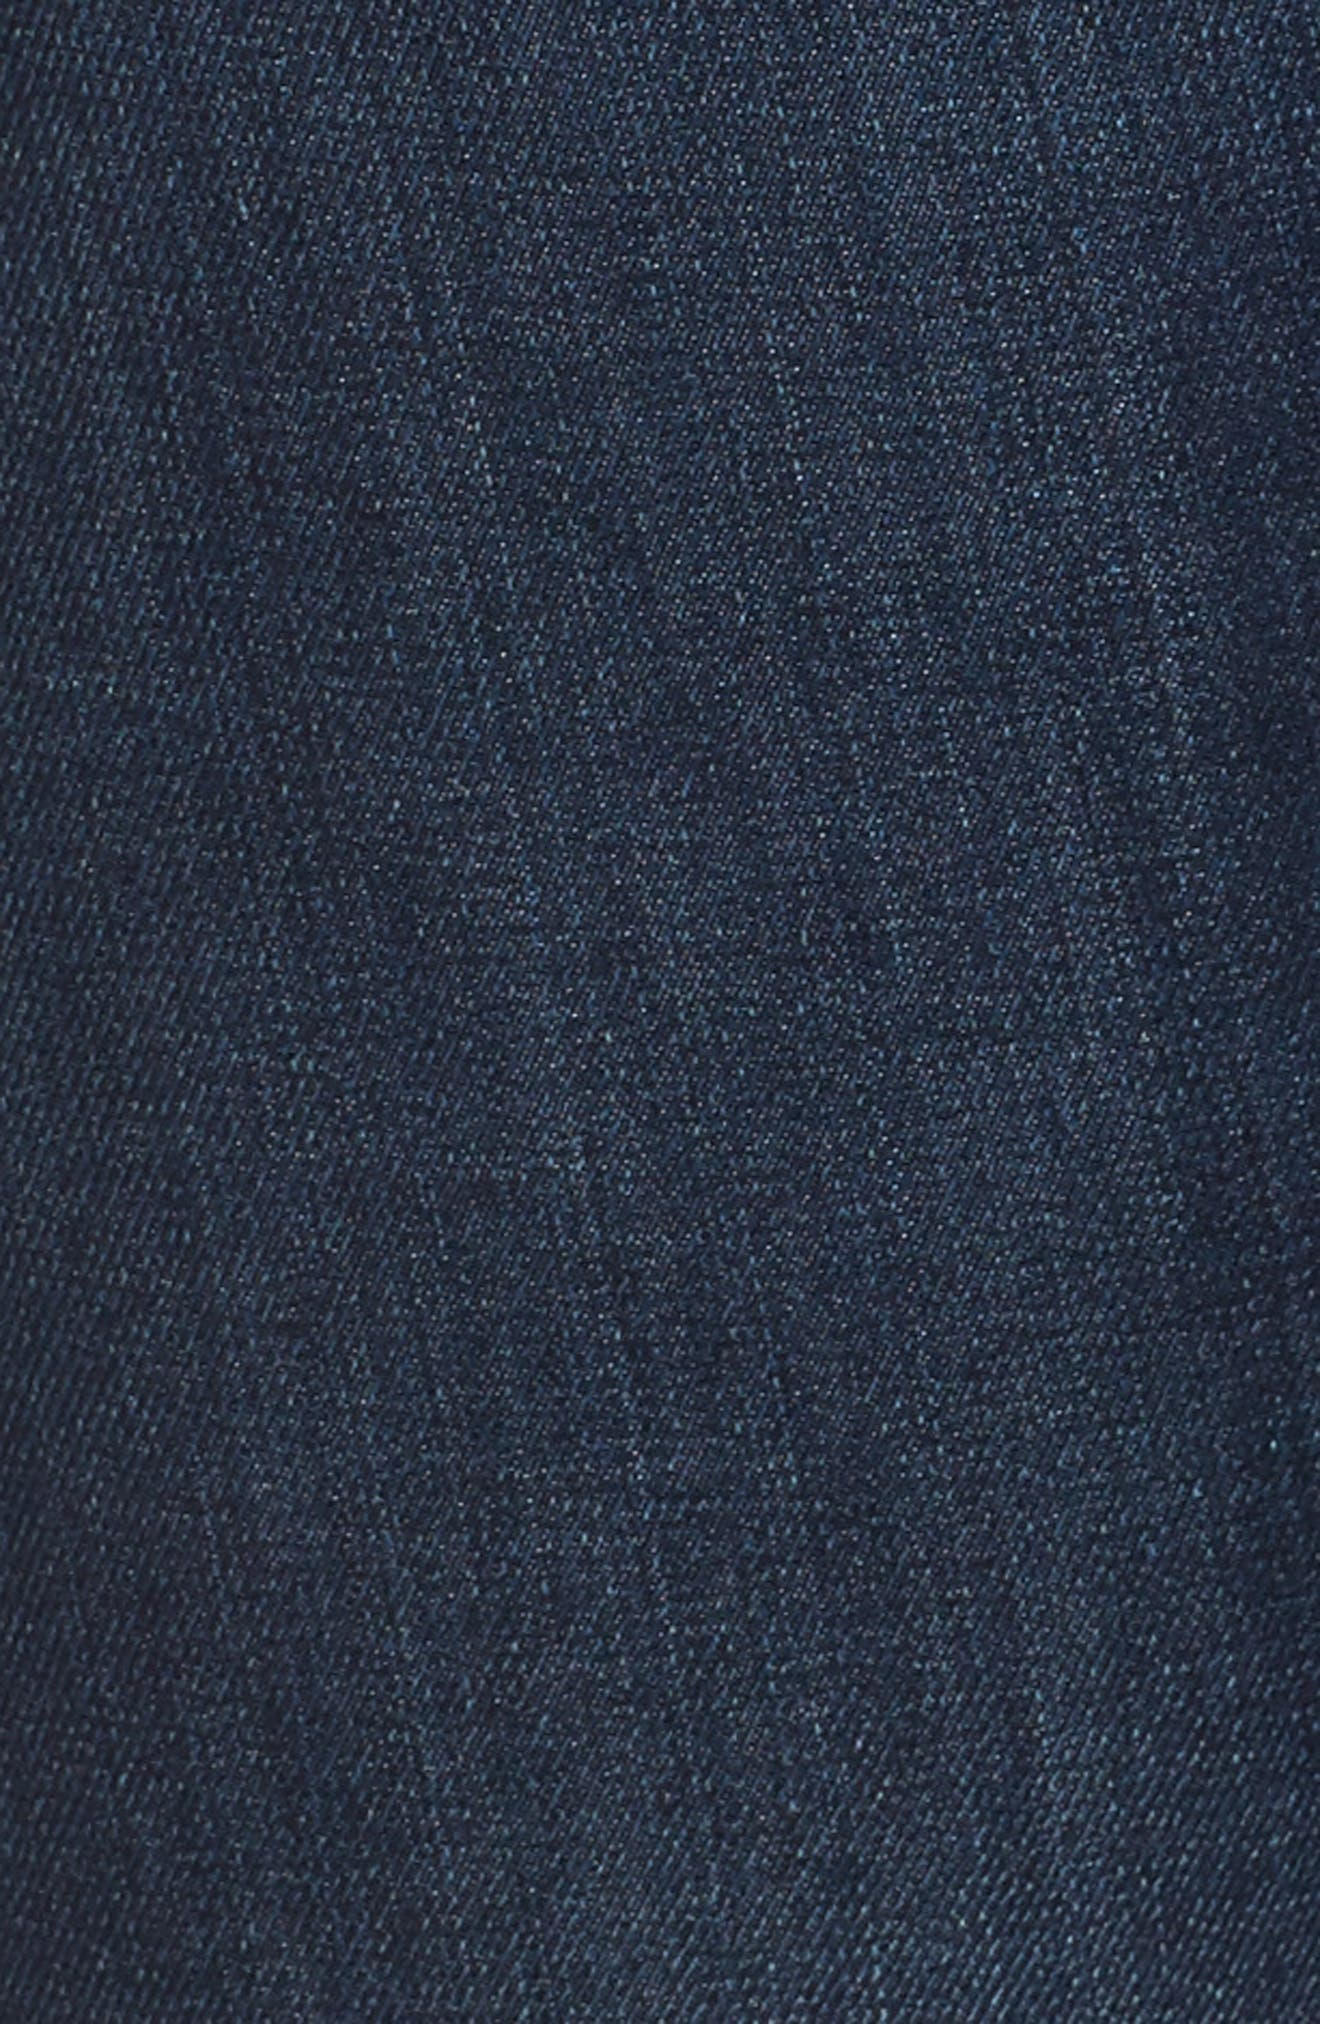 Ginger Bootcut Jeans,                             Alternate thumbnail 5, color,                             Twilight Blue